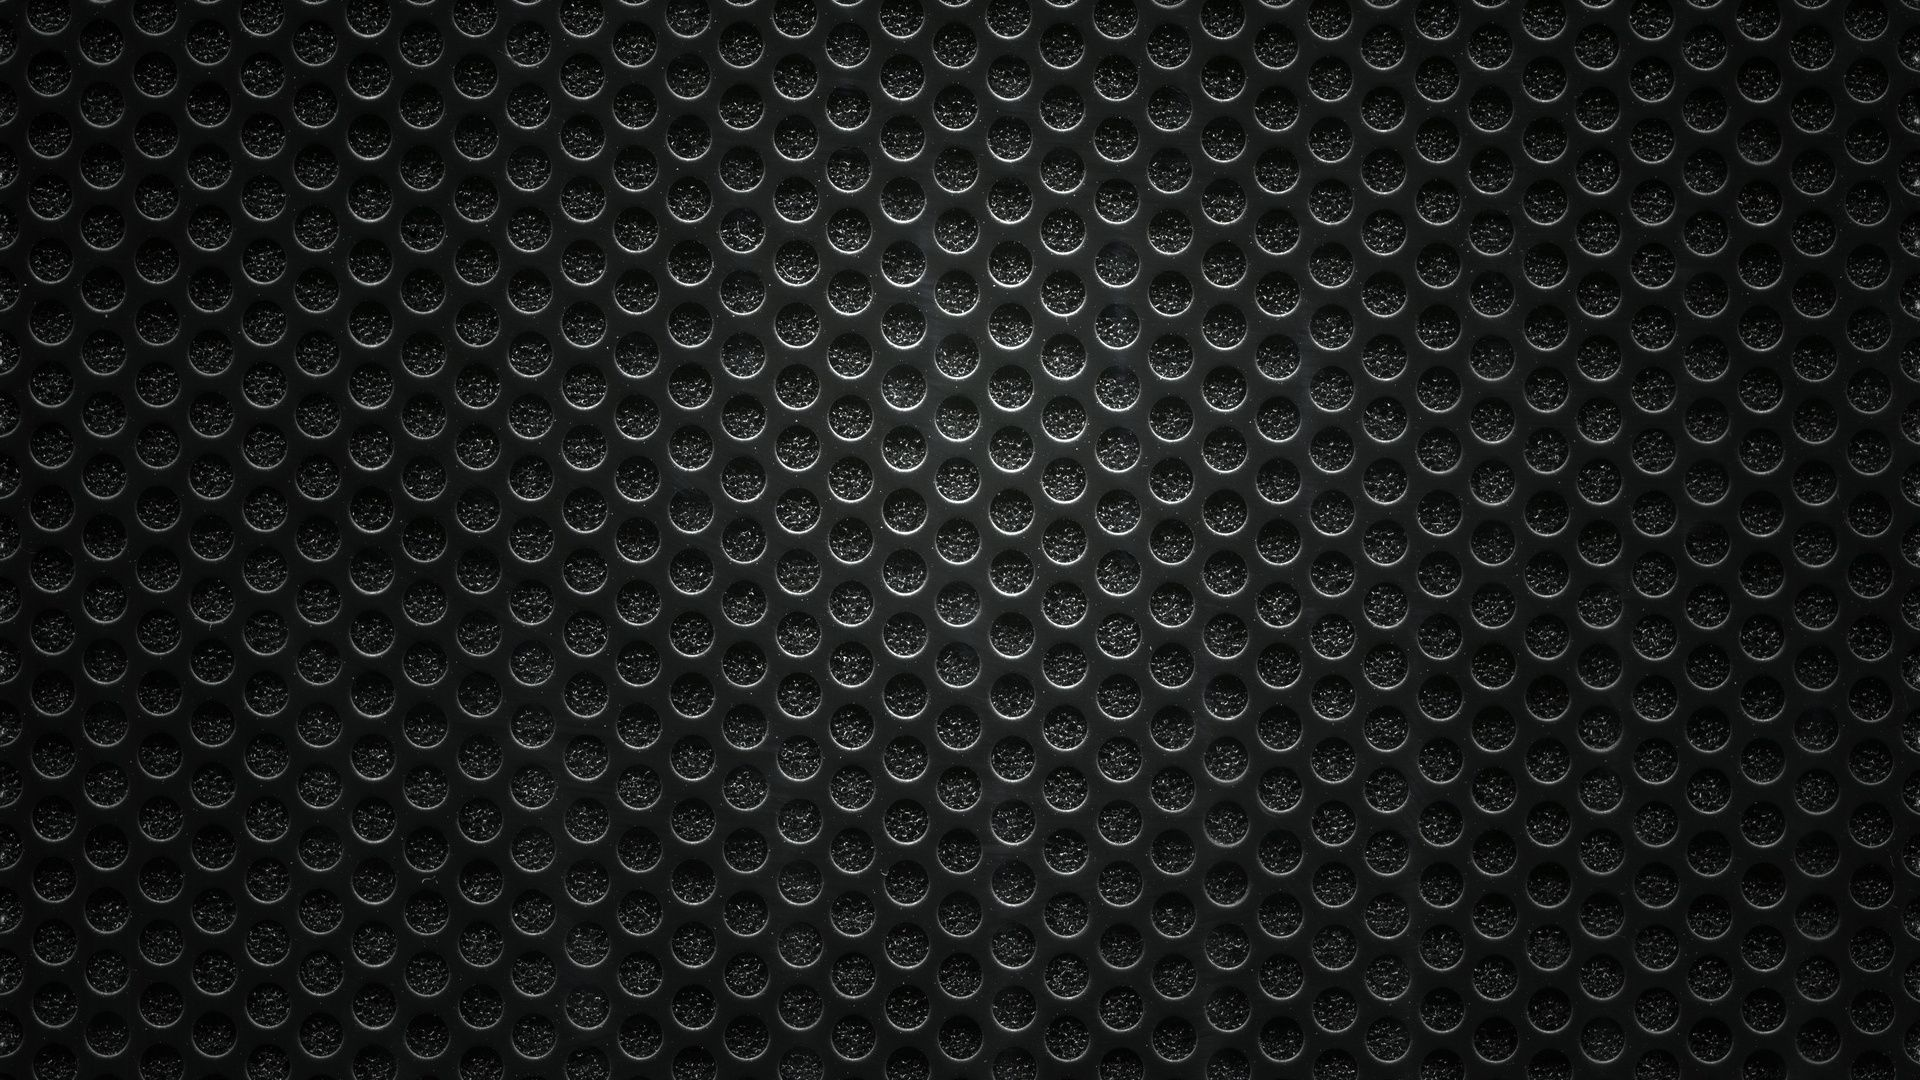 Hd wallpaper with black background - Black Wallpaper In Fhd For Free Download For Android Desktop